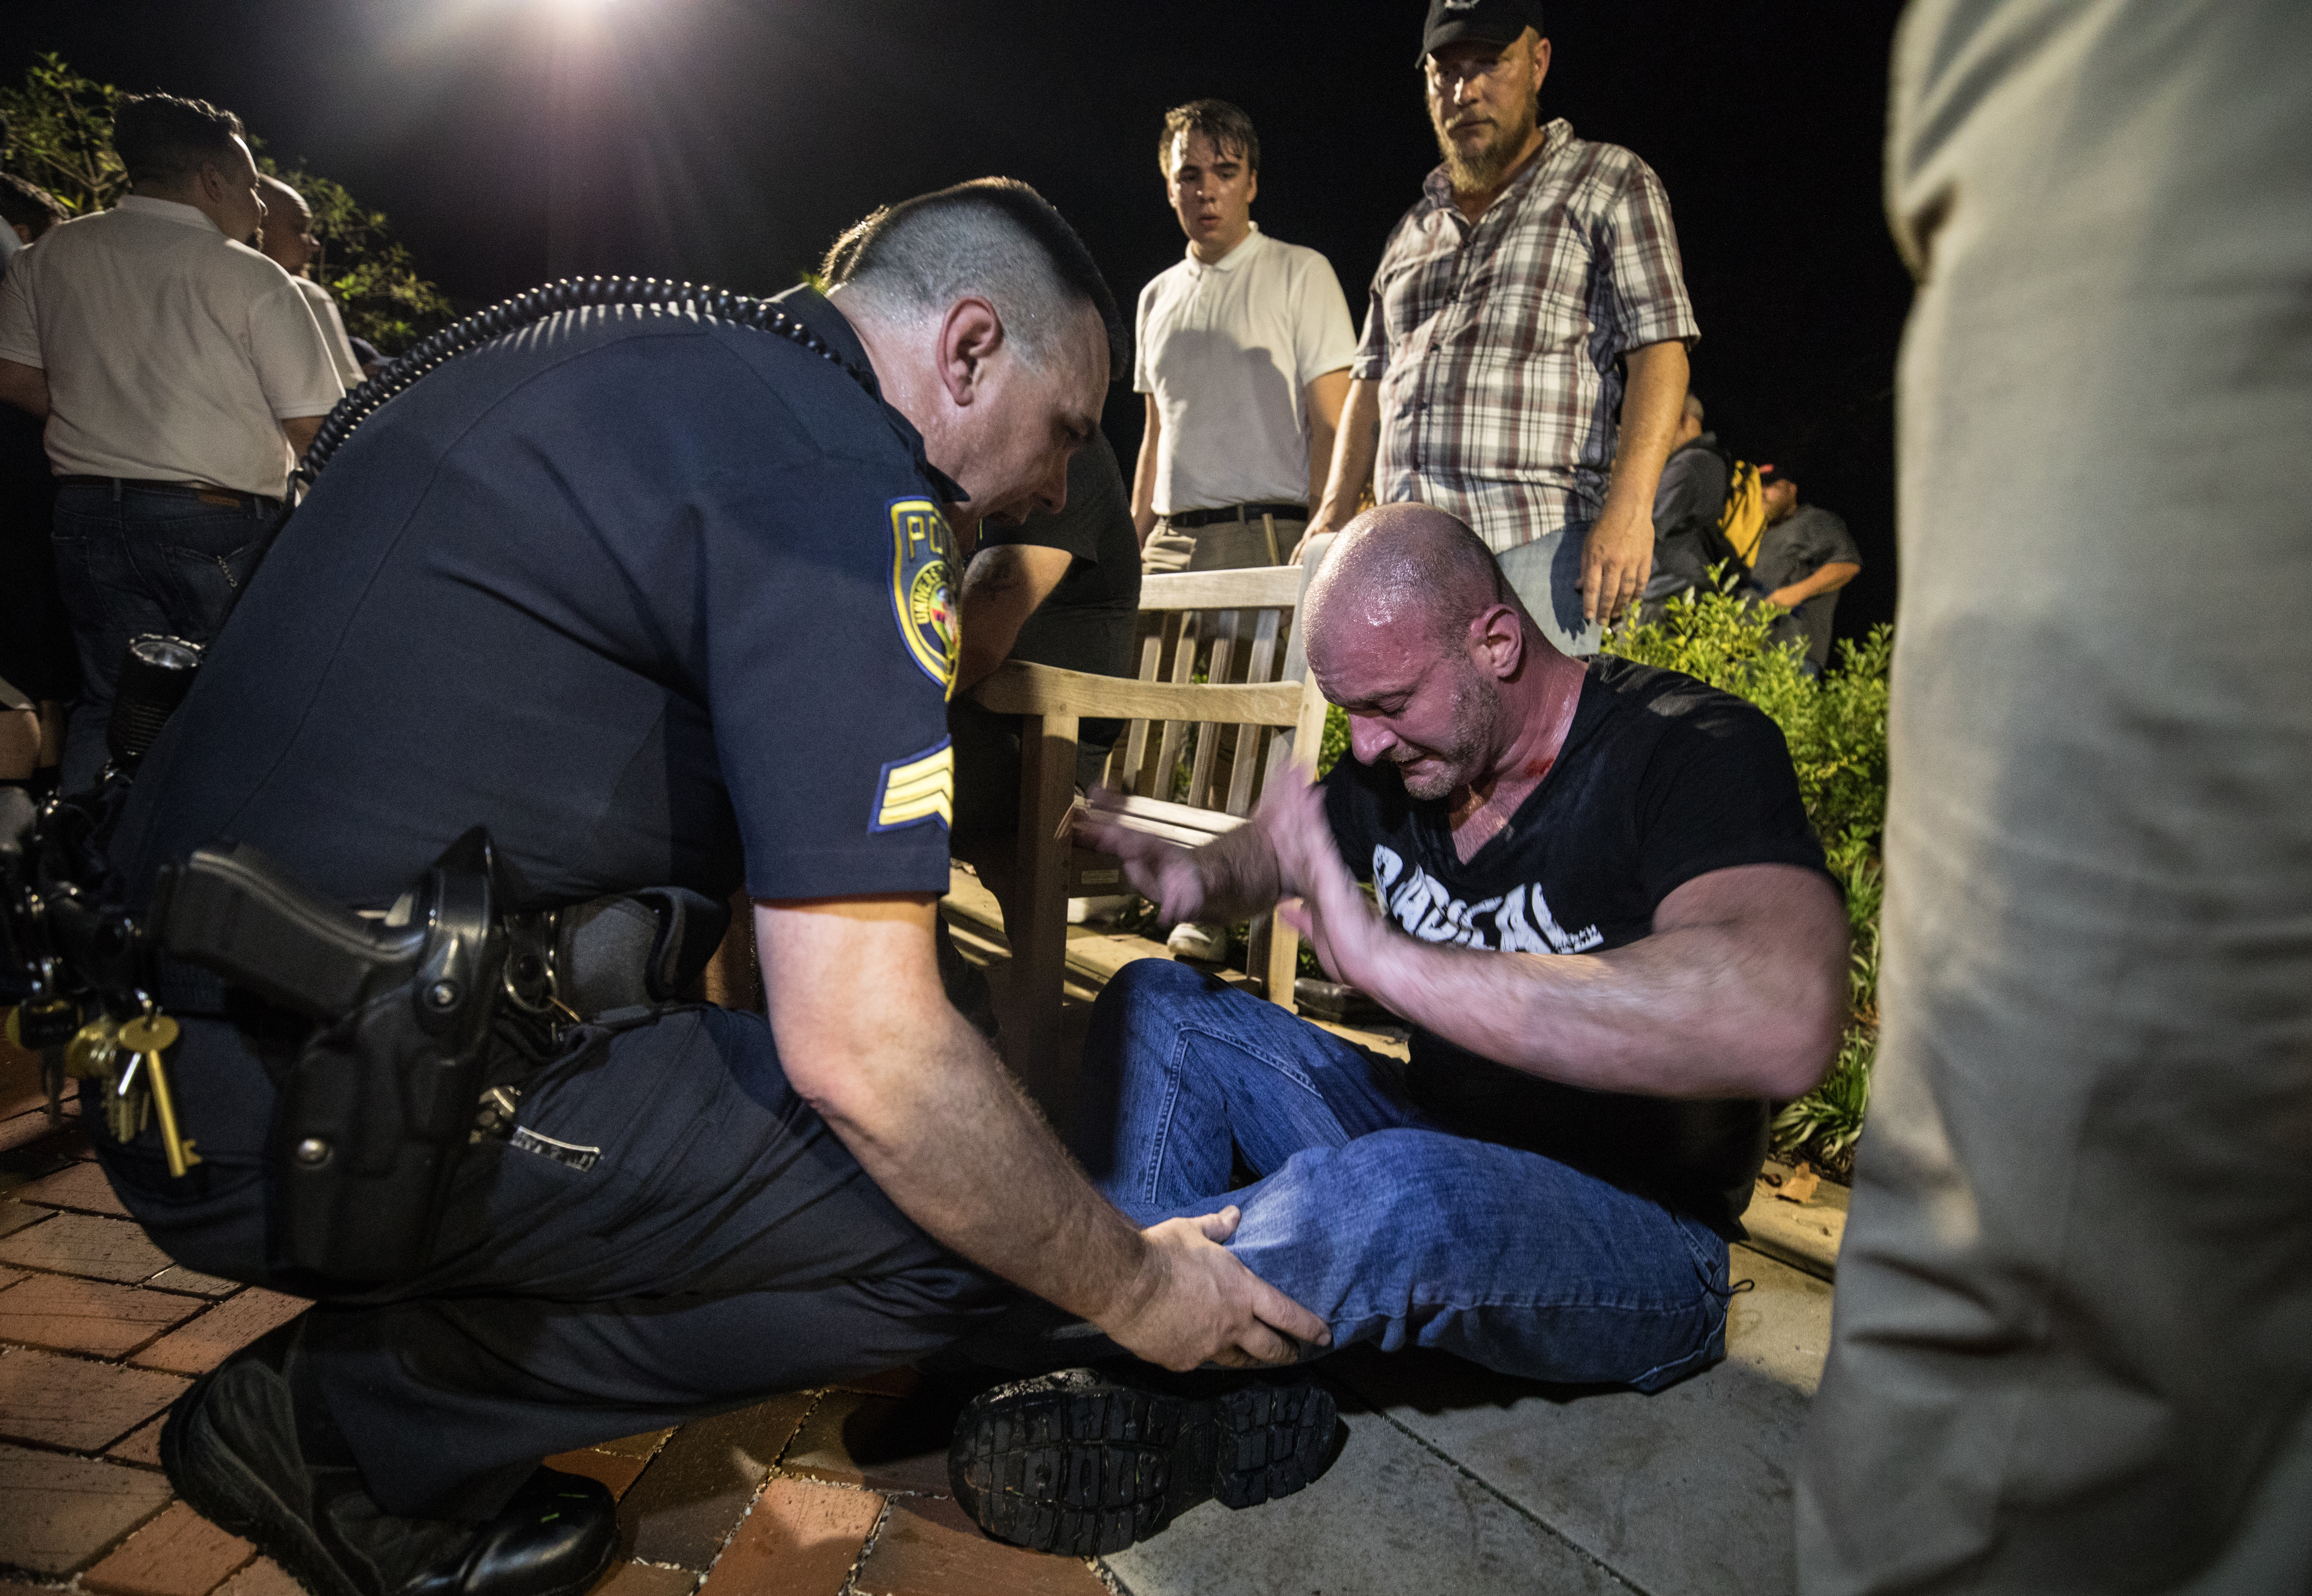 White nationalist Chris Cantwell has had quite the week after being featured prominently in an HBO news program on the march in Charlottesville, Virginia, last weekend. Must credit: Photo by Evelyn Hockstein for The Washington Post